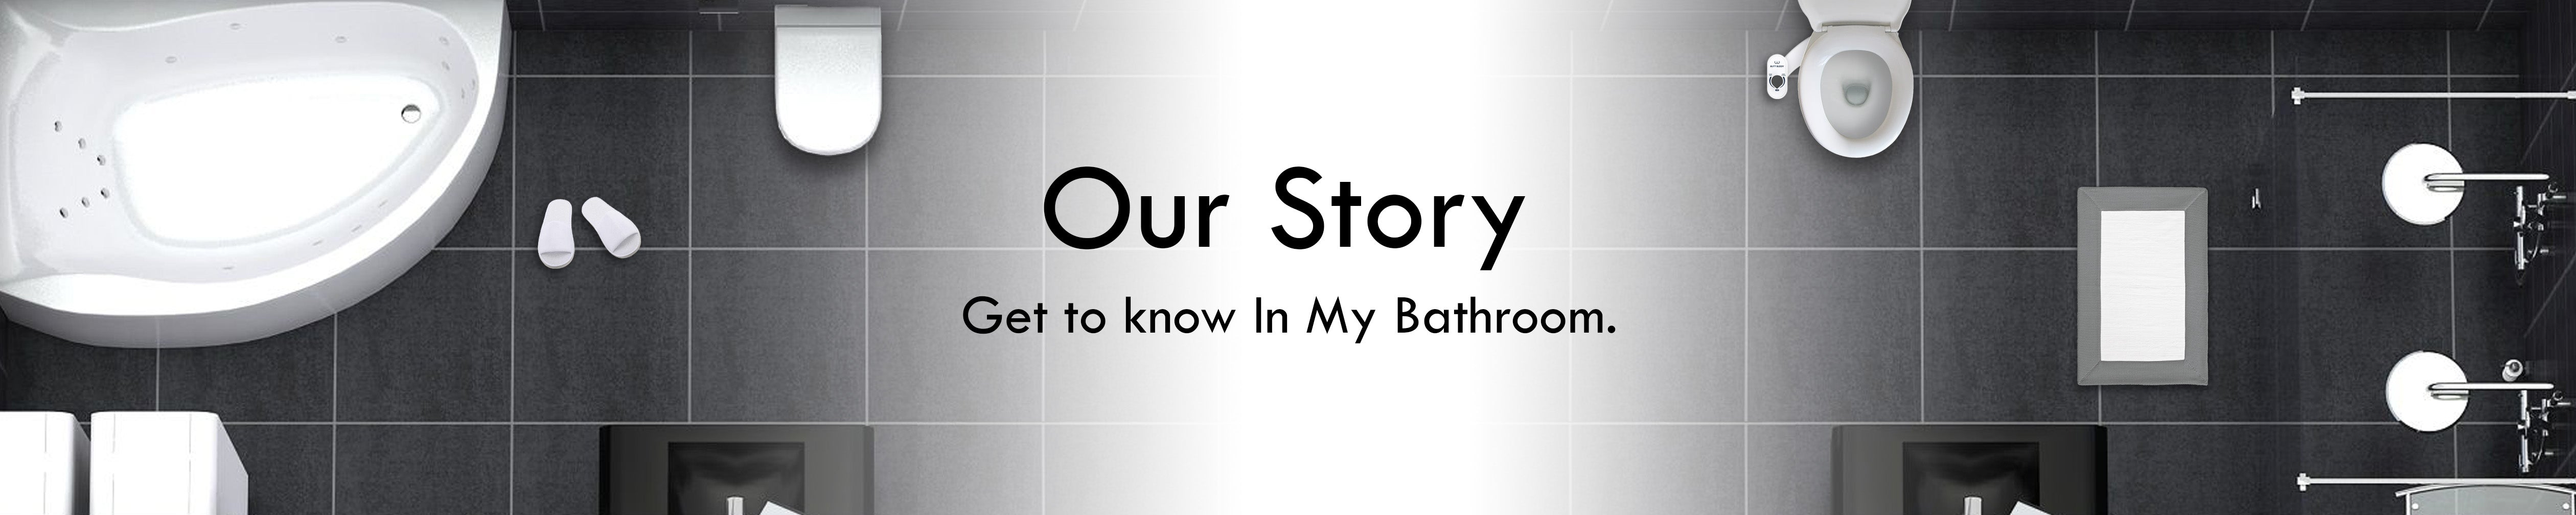 In My Bathroom (IMB) | About Us - Our Story